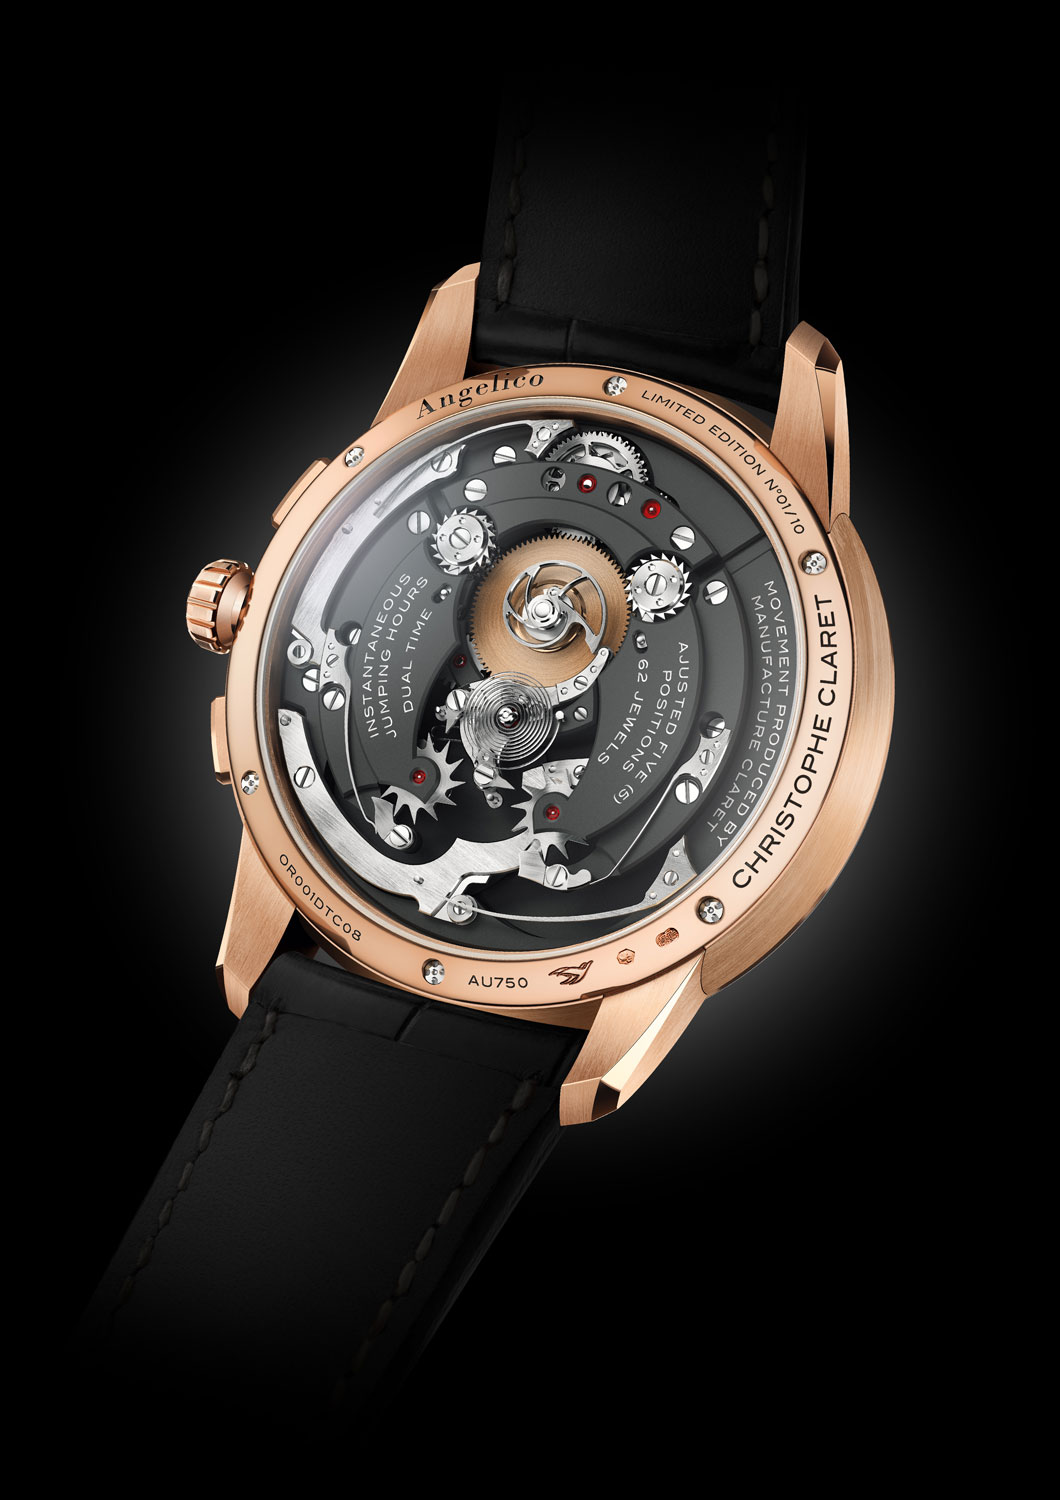 Christophe Claret Unveils A Horological First In The The Angelico Tourbillon 3